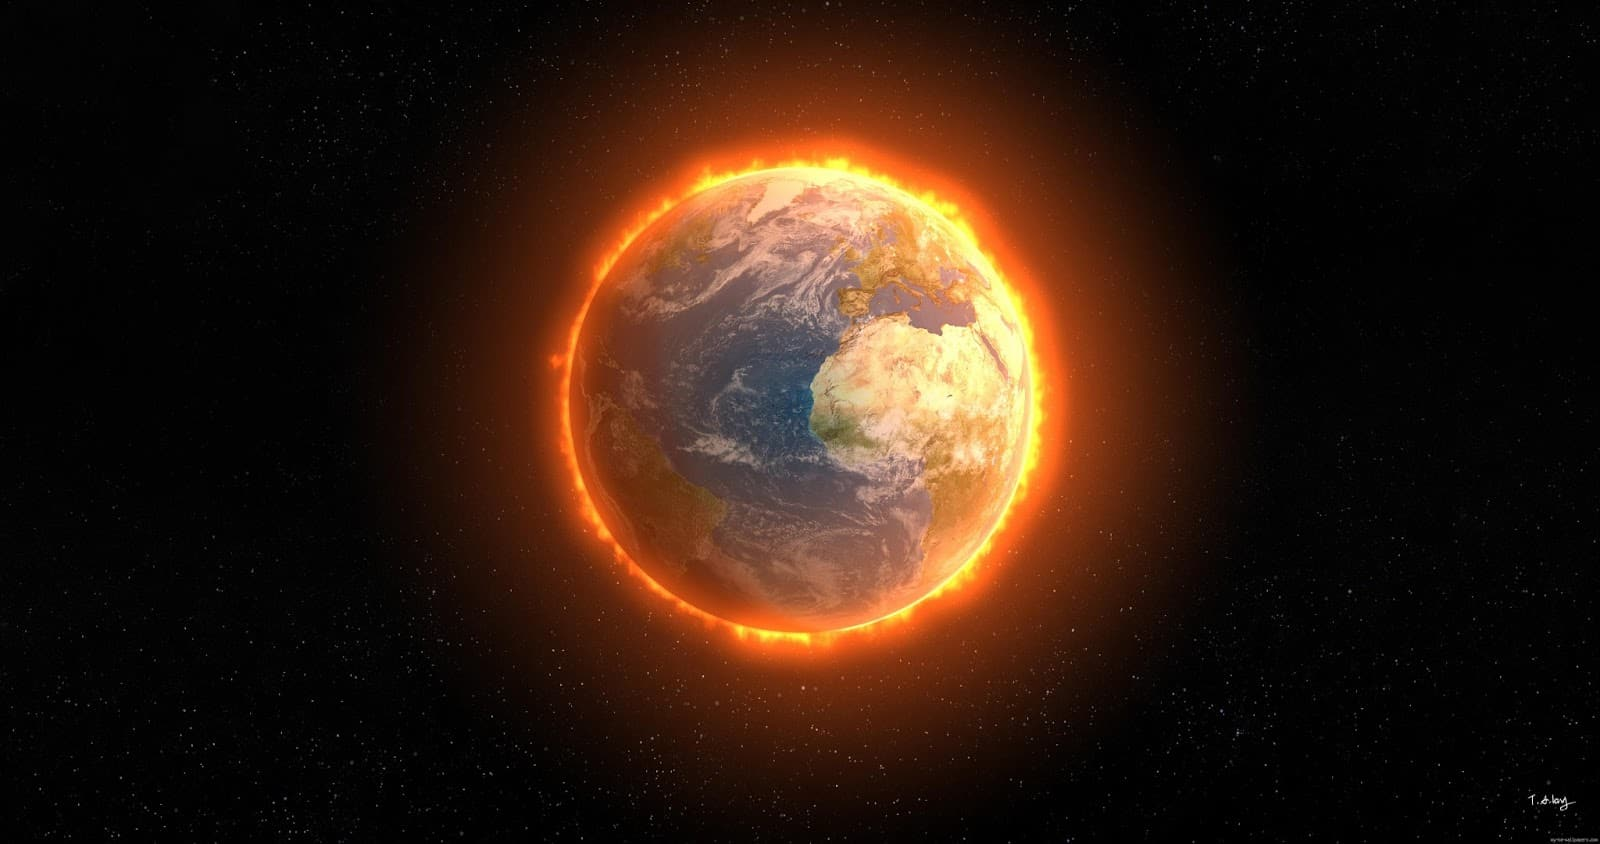 4th Bowl of Wrath,4th Vial of Wrath,4th Bowl,Fourth Bowl,4th Vile,Fourth Vile,Sun,Sol,Scorch,Scorch men,scorch earth,scorch fire,scorch people,scorch everyone,Fire,Heat,Intense Heat,hot,Global Warming,climate change,earth burning,earth on fire,earth burning,people burning,Judgment,Plagues,10 plagues of Egypt,7 Angles,7 last Plagues,7 Final Plagues,Curses,7 Golden Bowls,Day of Wrath,Day of Vengeance,Anger,7 Vials of Wrath,7 Bowls of Wrath,Book of Revelation,Revelation 15,Revelation 16,Revelation Chapter 15,Revelation Chapter 16,Seven Vials of Wrath,7 Vials,7 Bowls,Seven Bowls,wrath,Picture Gallery,pictures,Book of Revelation,